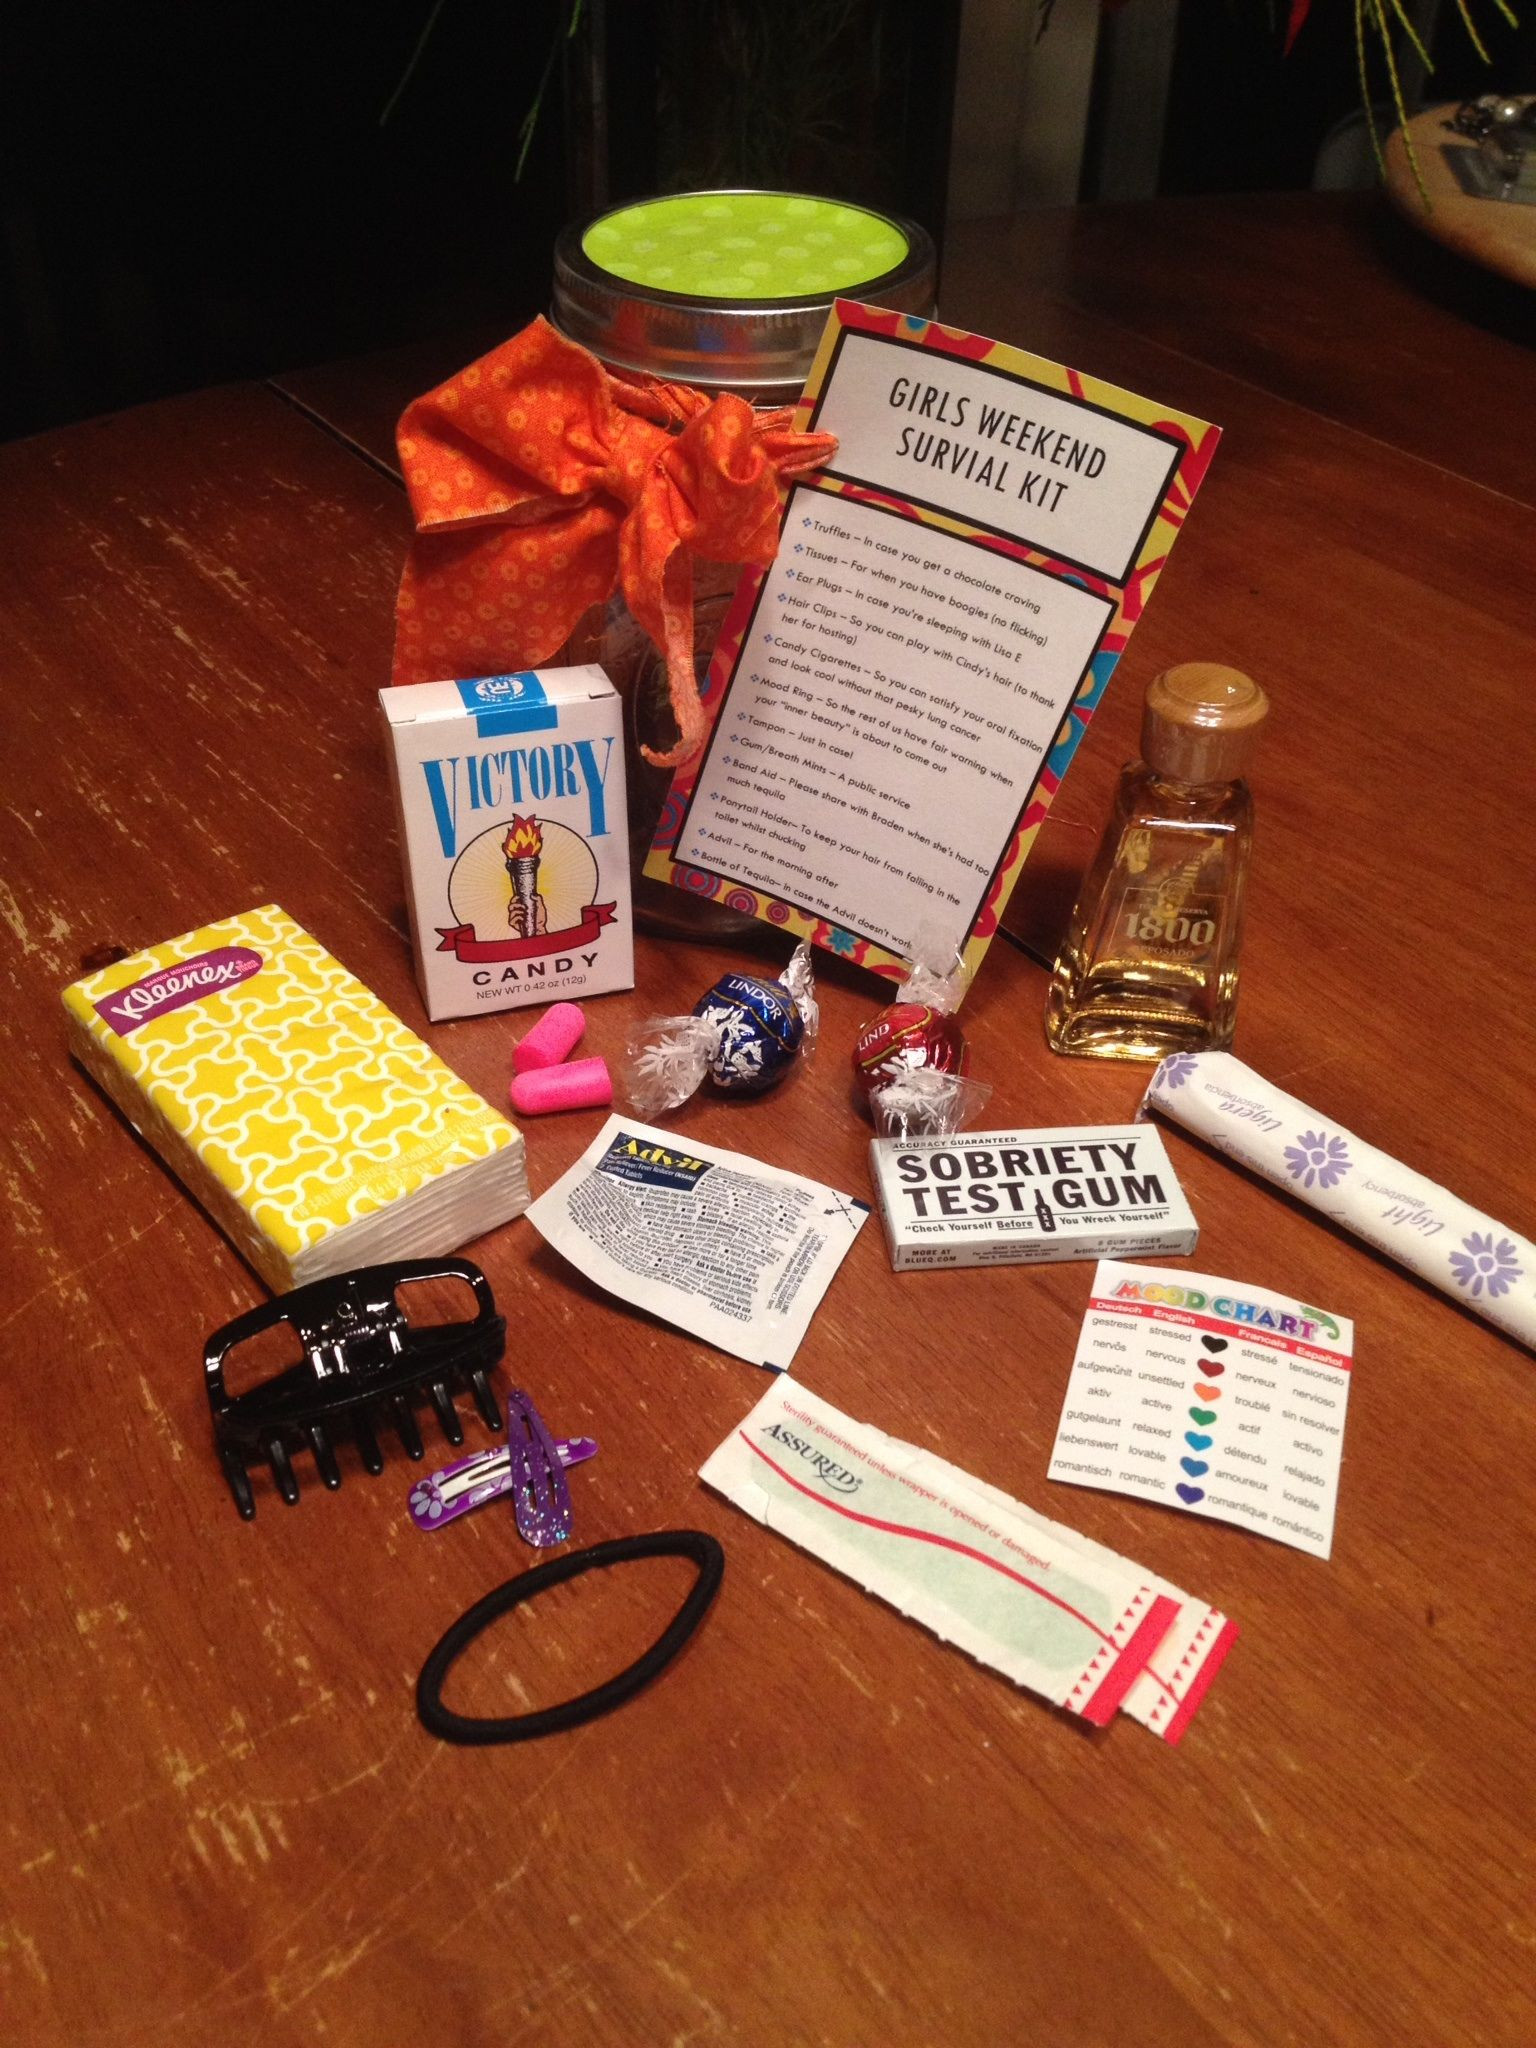 Best ideas about Girls Weekend Gift Bag Ideas . Save or Pin Girls Weekend Survival Kit the ingre nts Now.